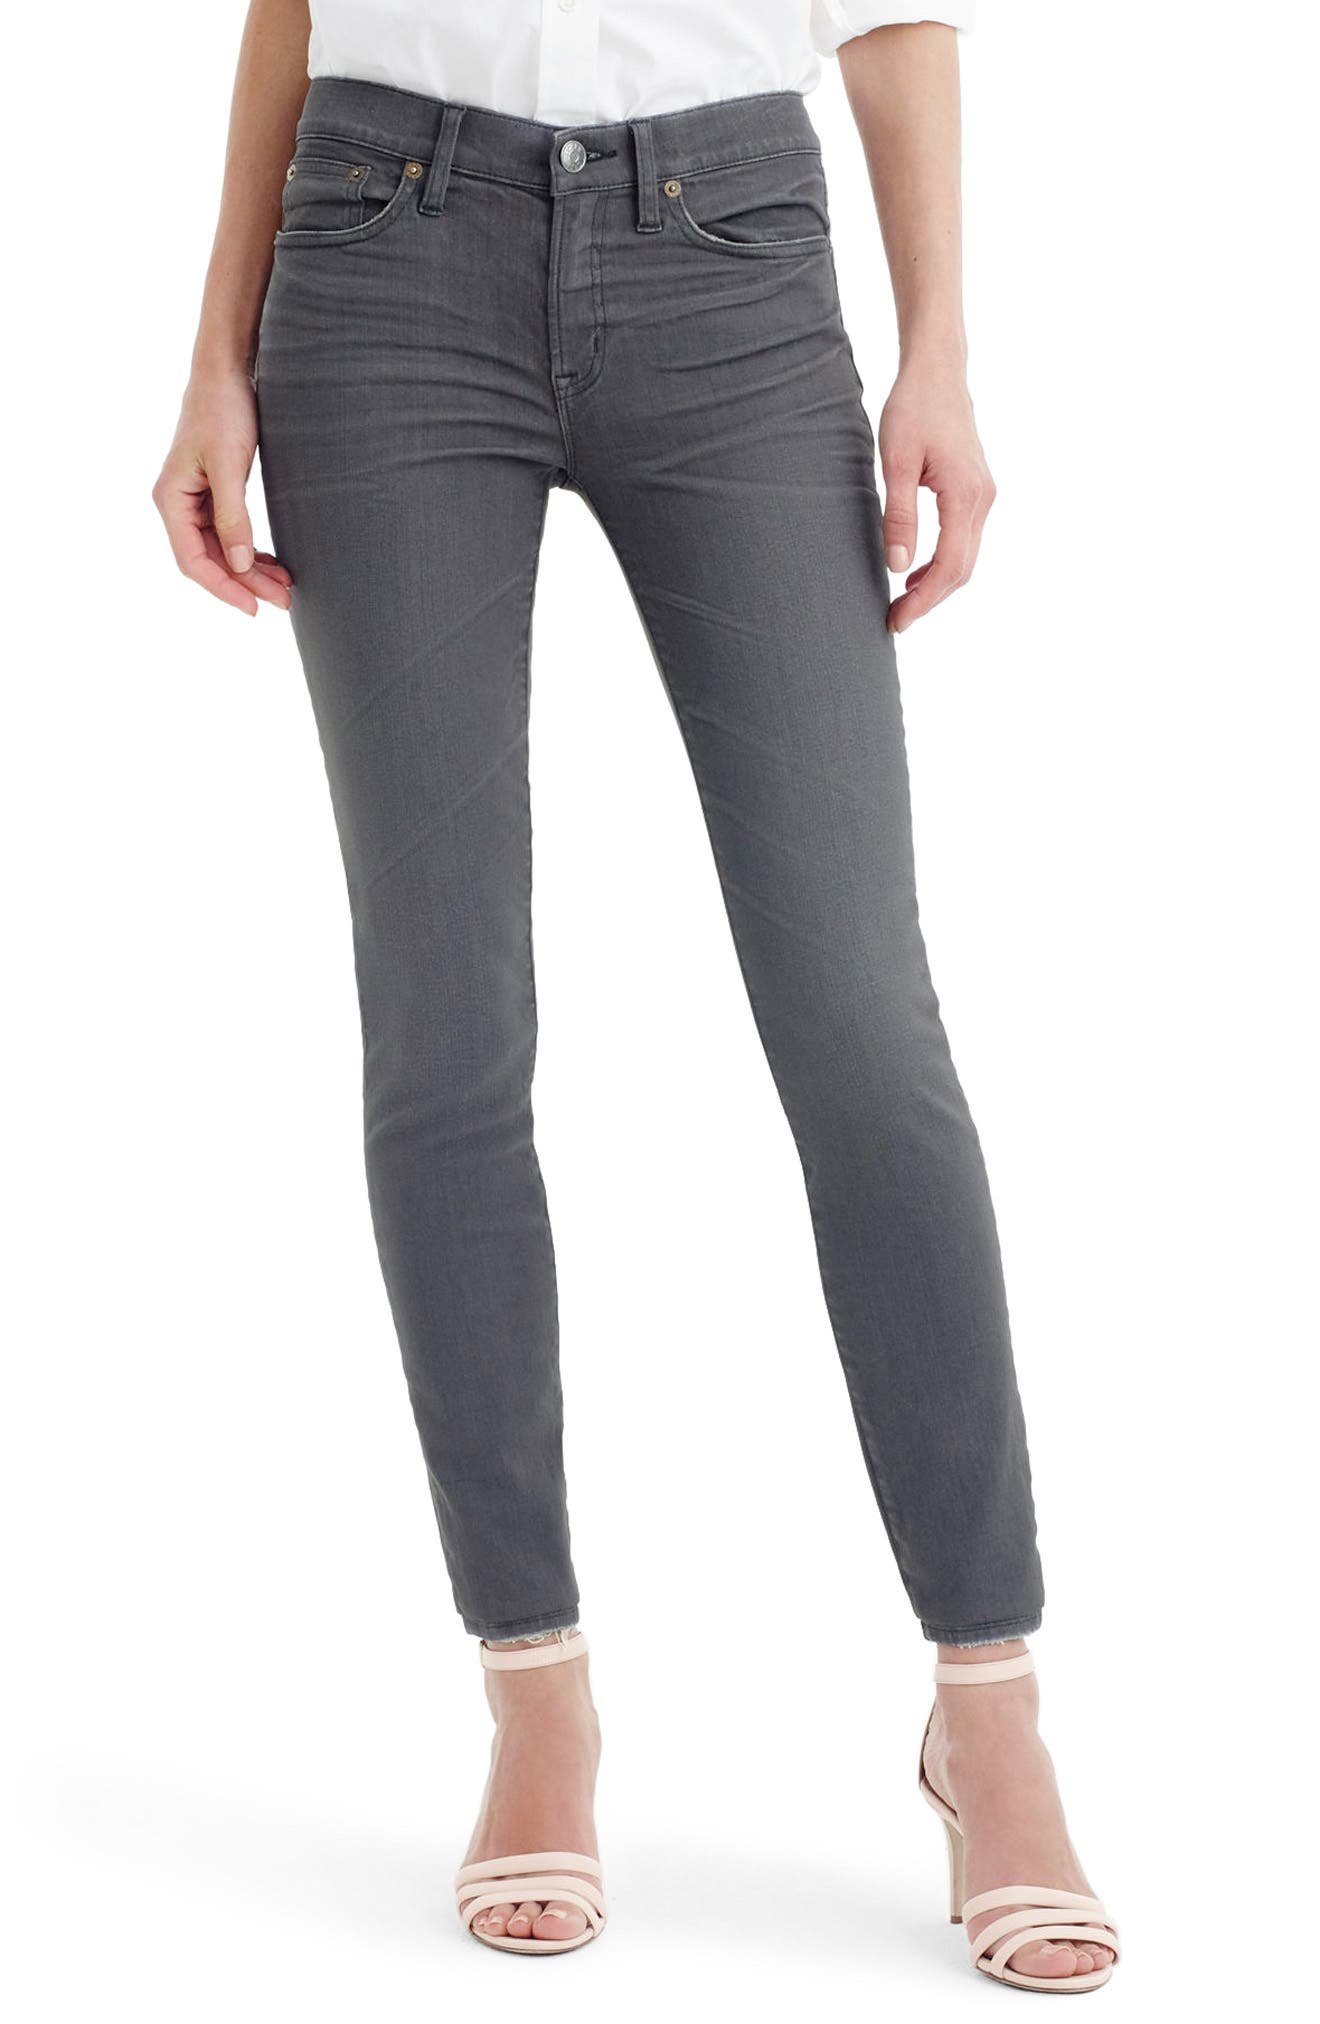 Toothpick Jeans,                             Main thumbnail 1, color,                             Grey Dove